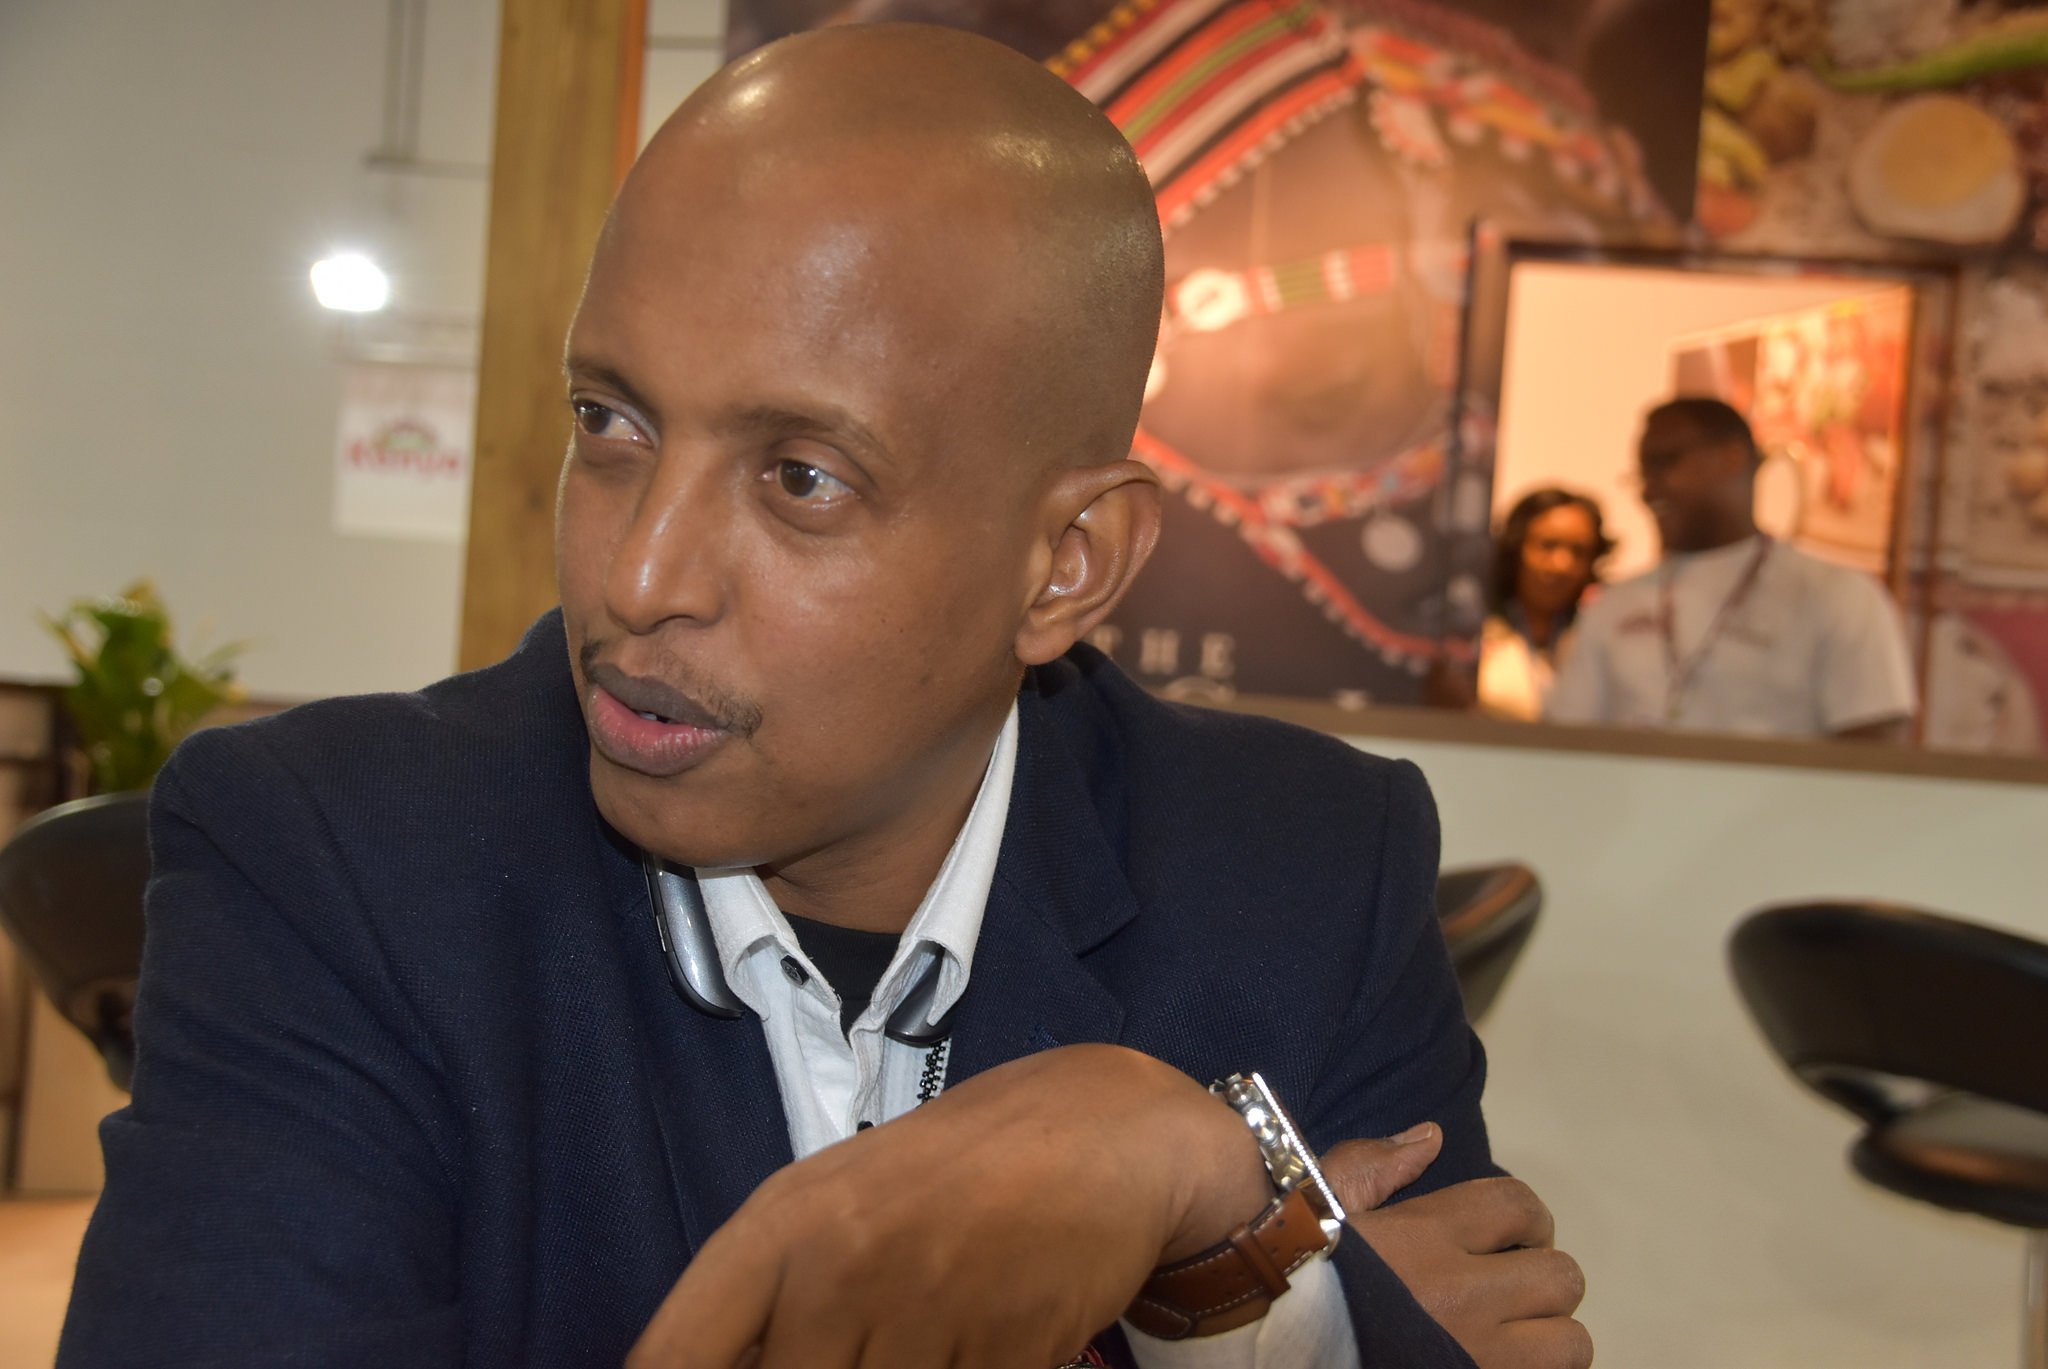 Kenya's Mohammed Hersi joins the ARP Travel Group as Operations Director